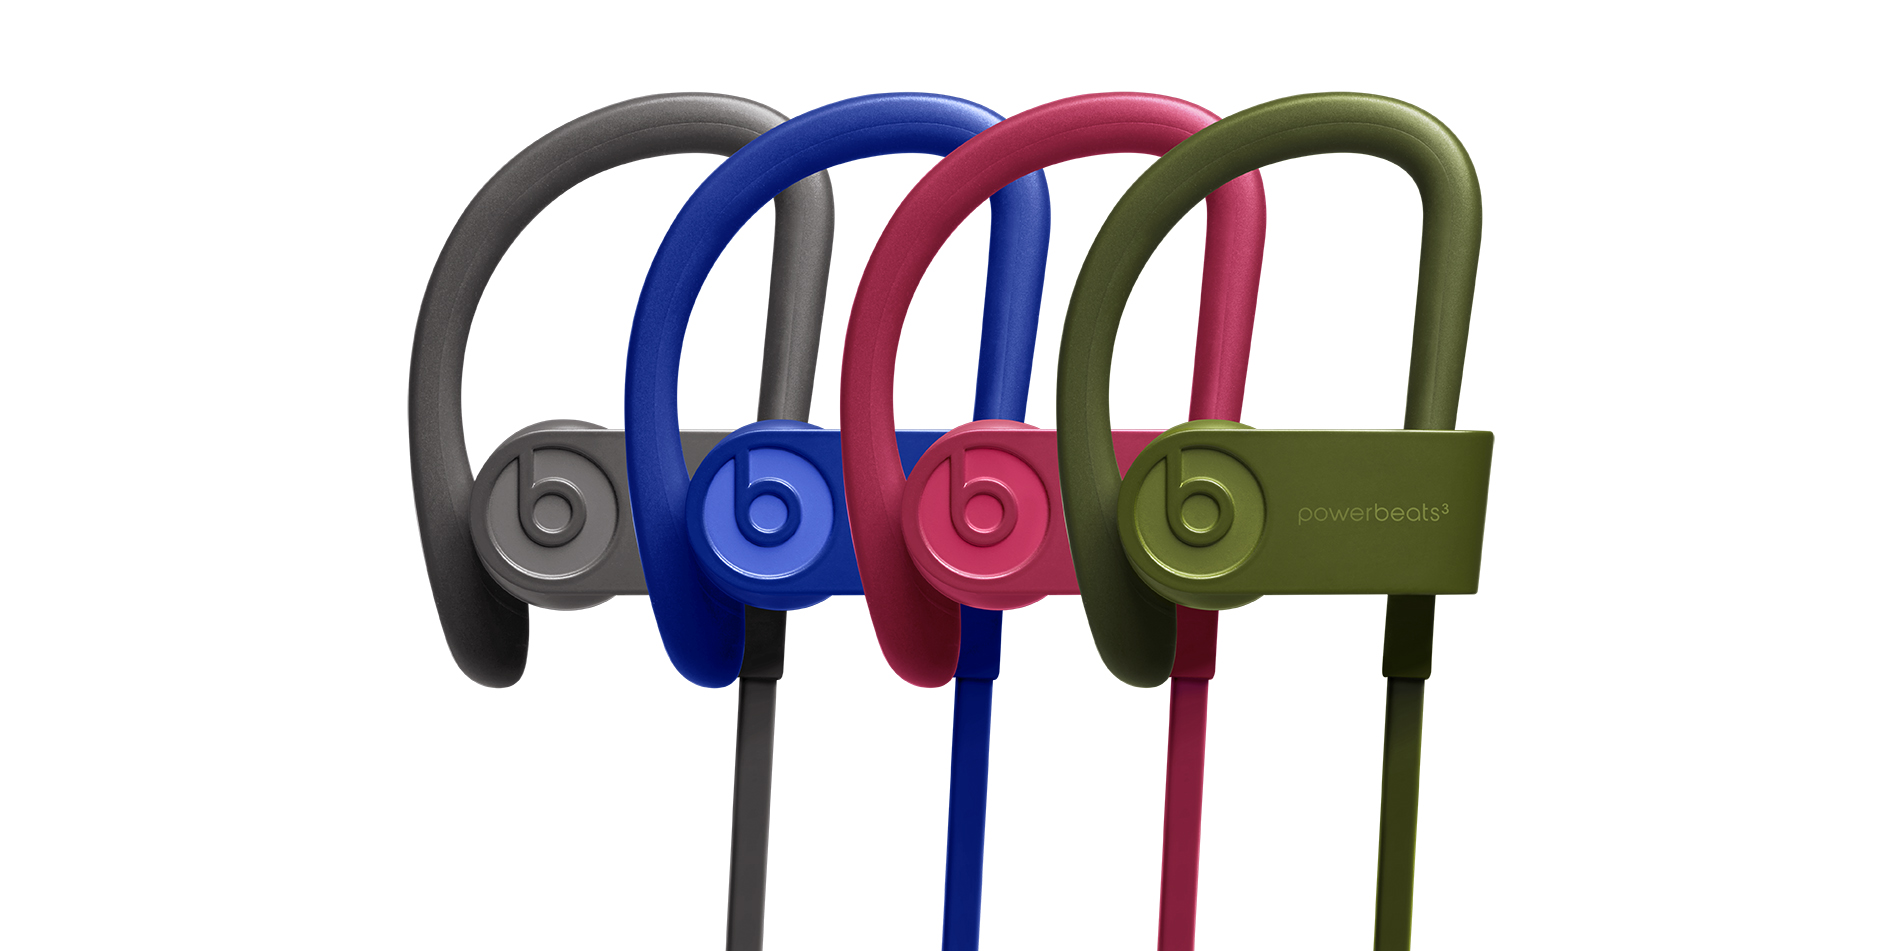 Powerbeats3 Wireless Earbuds Neighborhood Collection drop to $80 (Reg. $100) - 9to5Toys